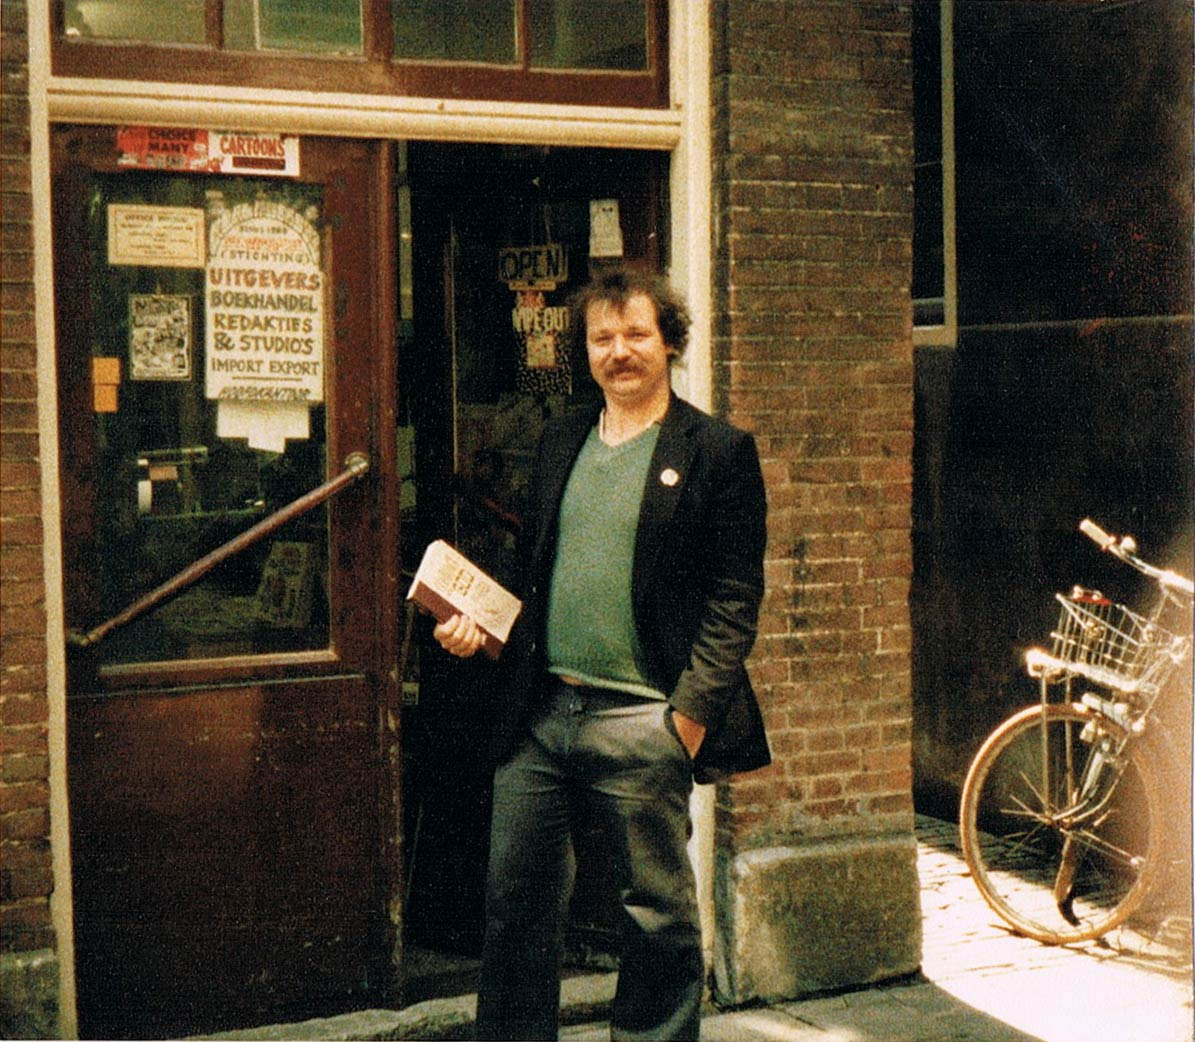 Kees Kousemaker at the offices of Real Free Press in Amsterdam in the 1970's